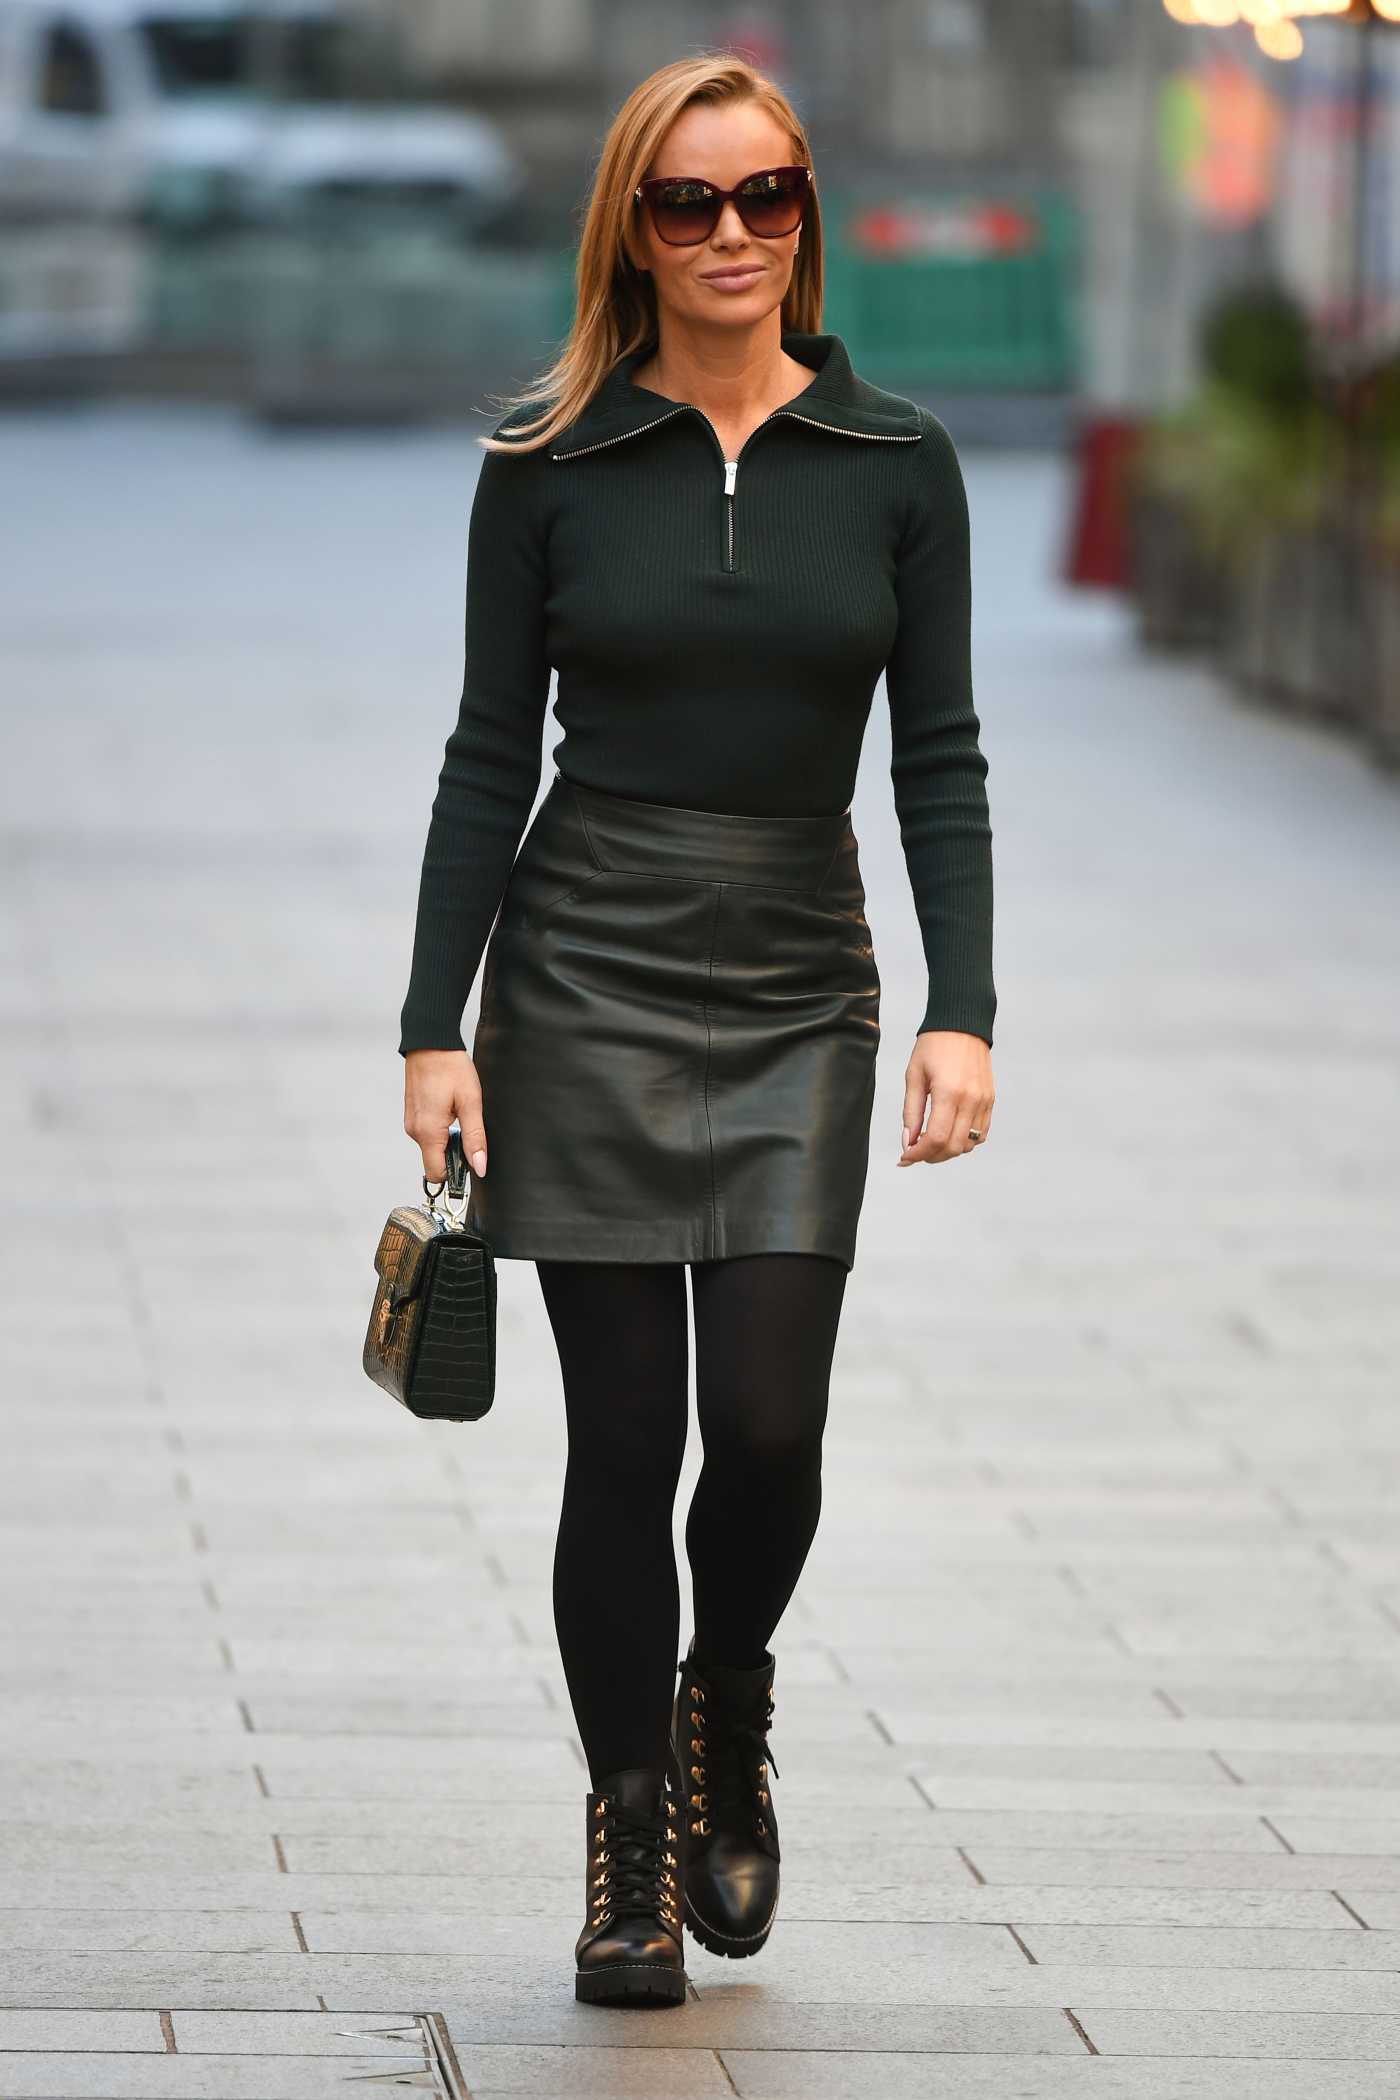 Amanda Holden in a Dark Green Outfit Leaves the Global Studios in London 11/04/2020